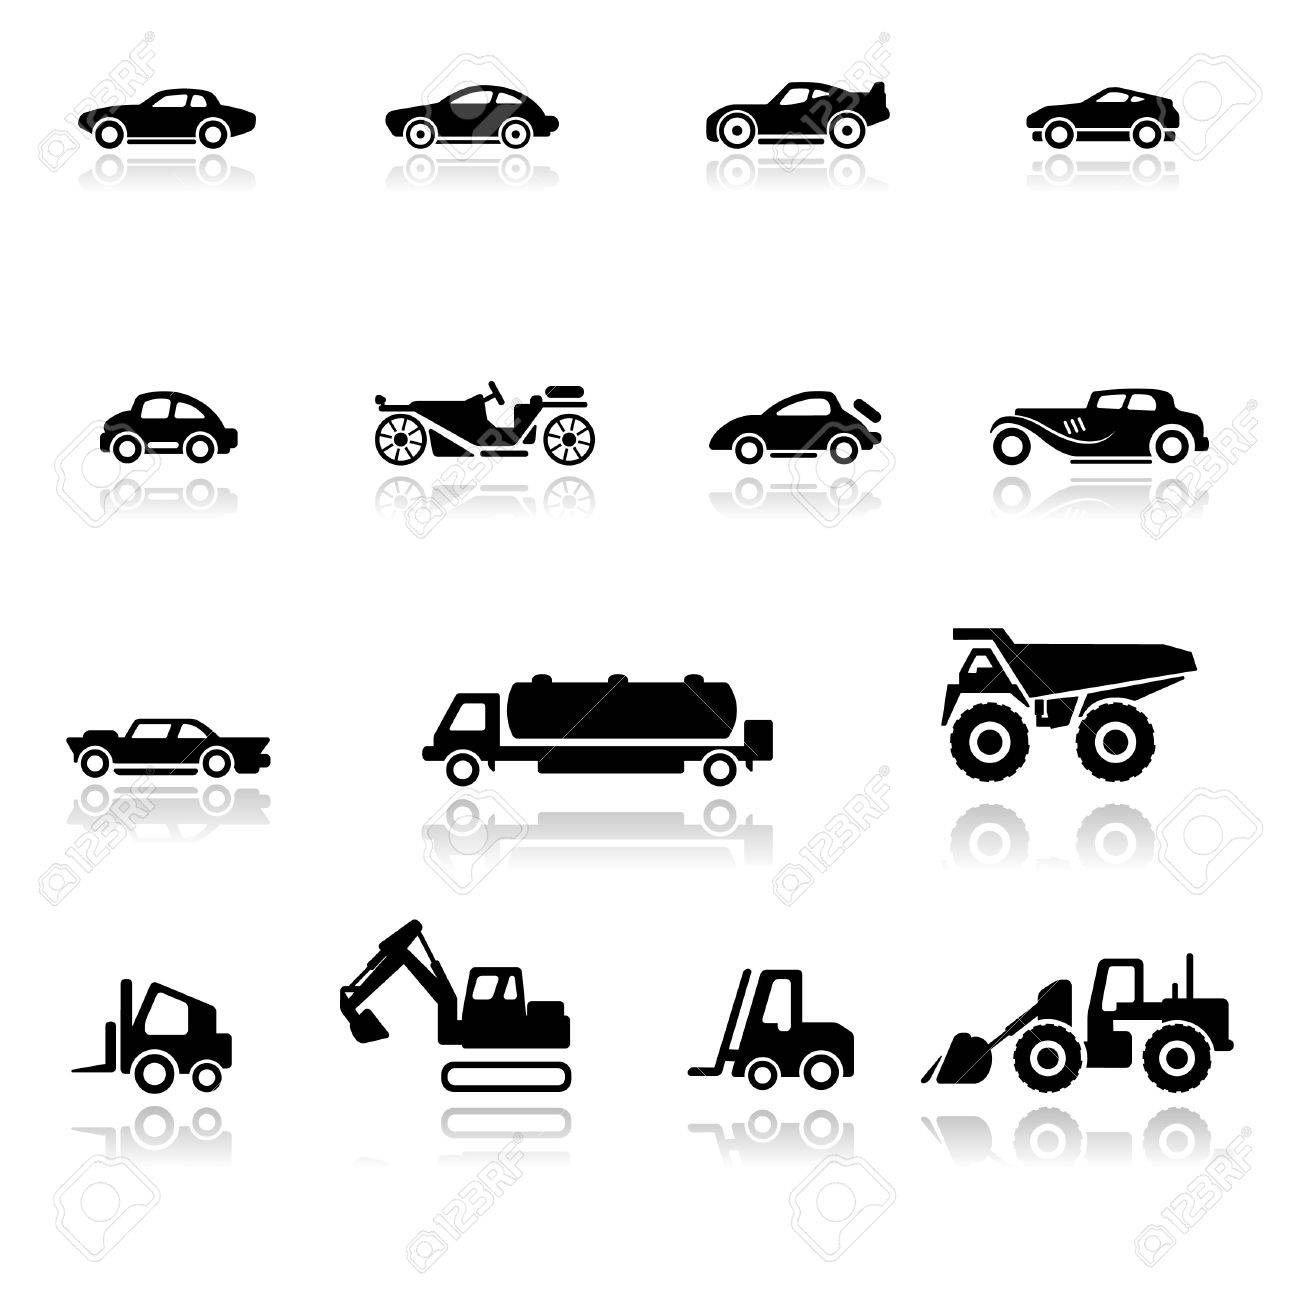 Icon set  Cars and Industrial Vehicles Stock Vector - 9650975